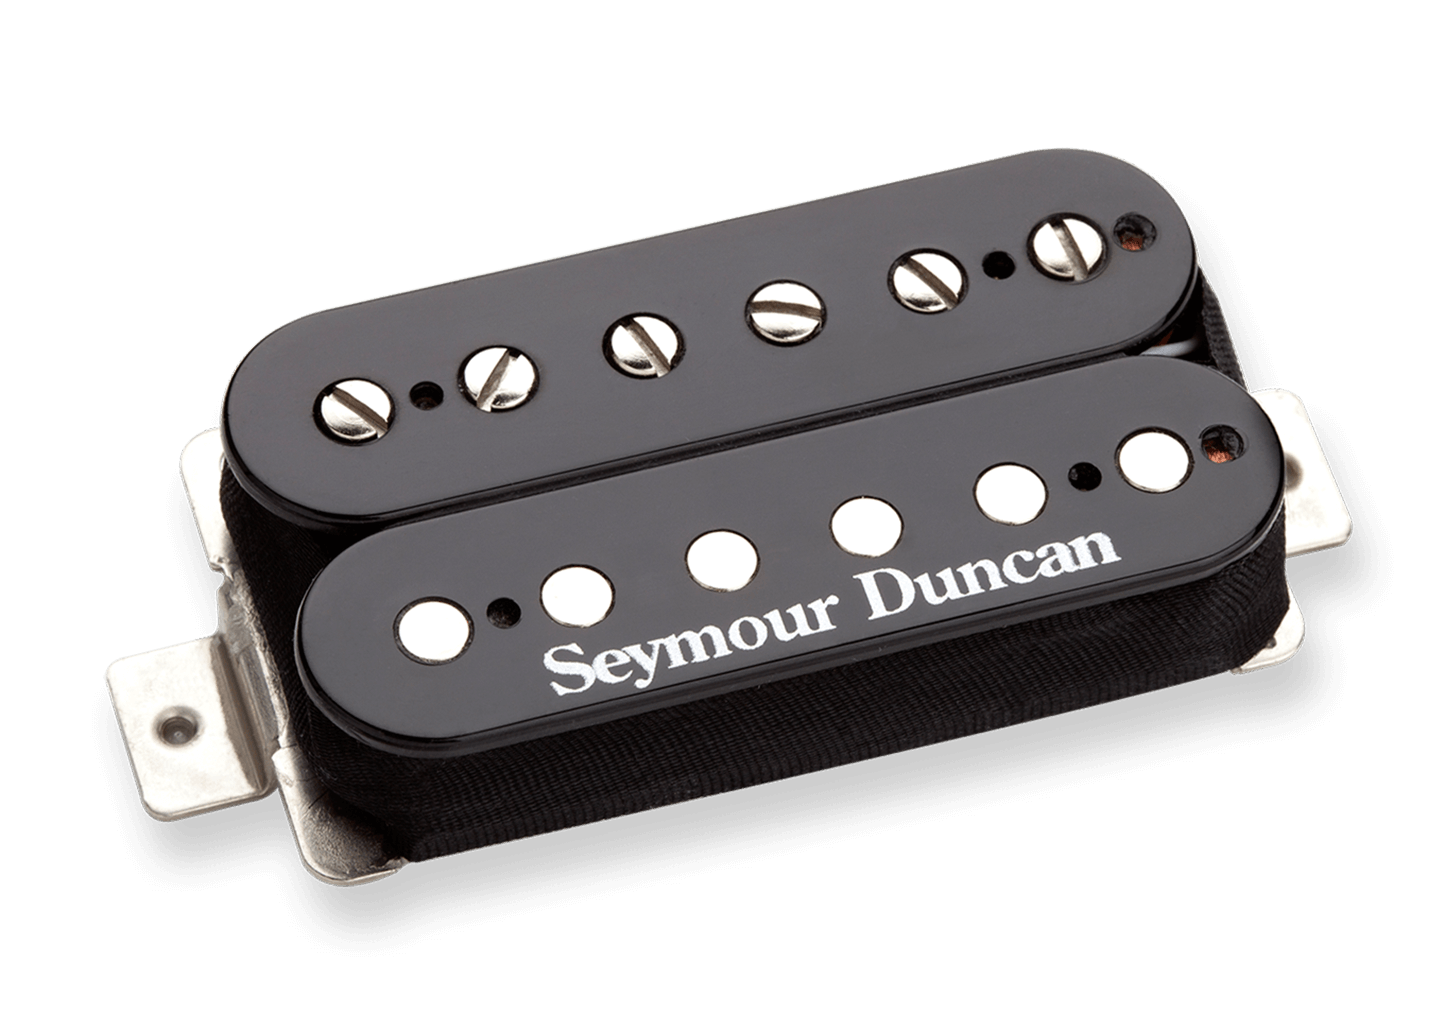 Seymour Duncan Jazz Bass Wiring Diagram from static-resources.imageservice.cloud